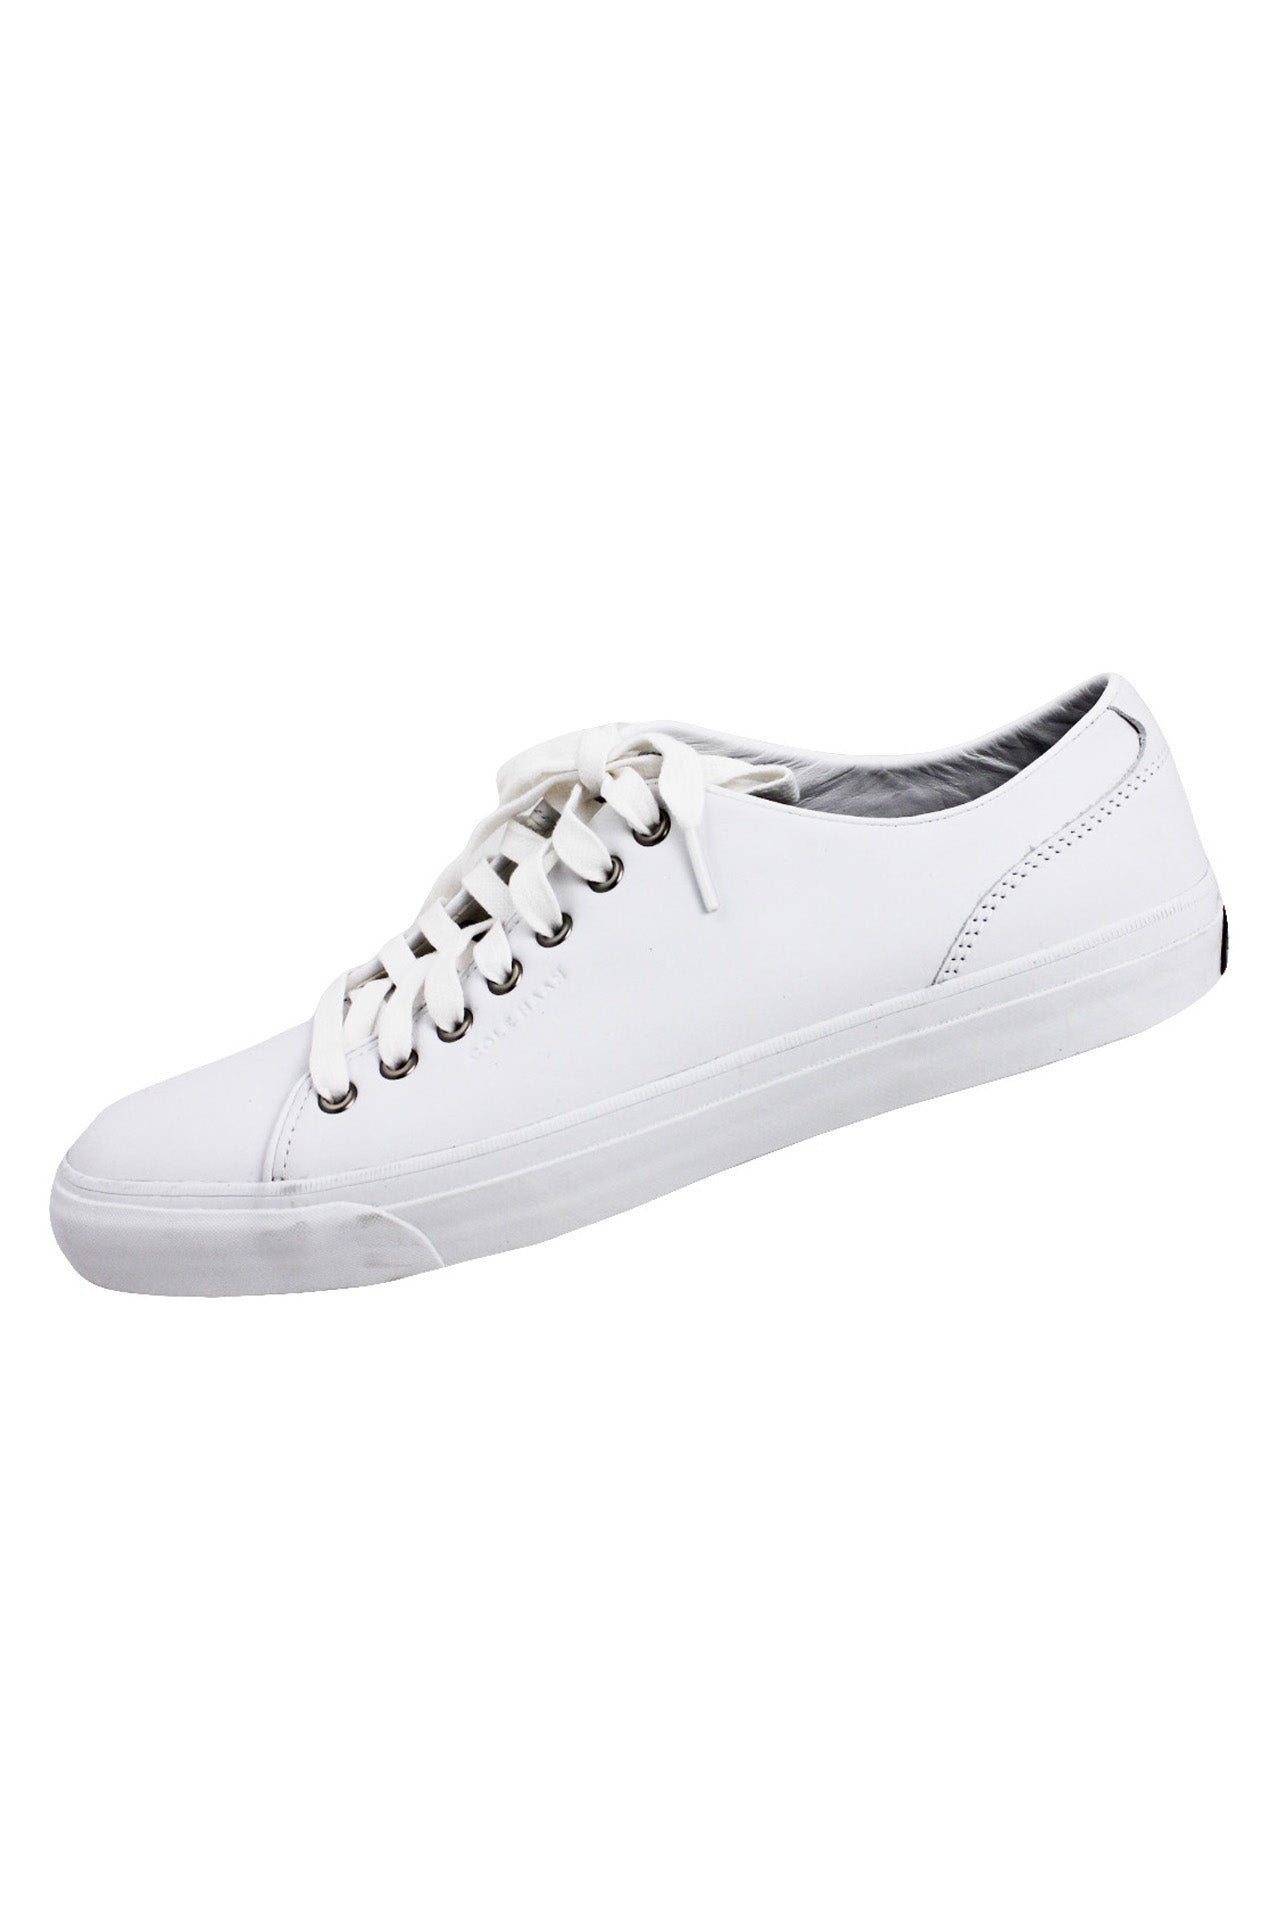 "cole haan grandseries white leather low top sneakers. features tonal design with silver-toned eyelet lace up closure. stamped branding at outer; black and white lobster 'pinch' logo at heel. ~1"" outsole."